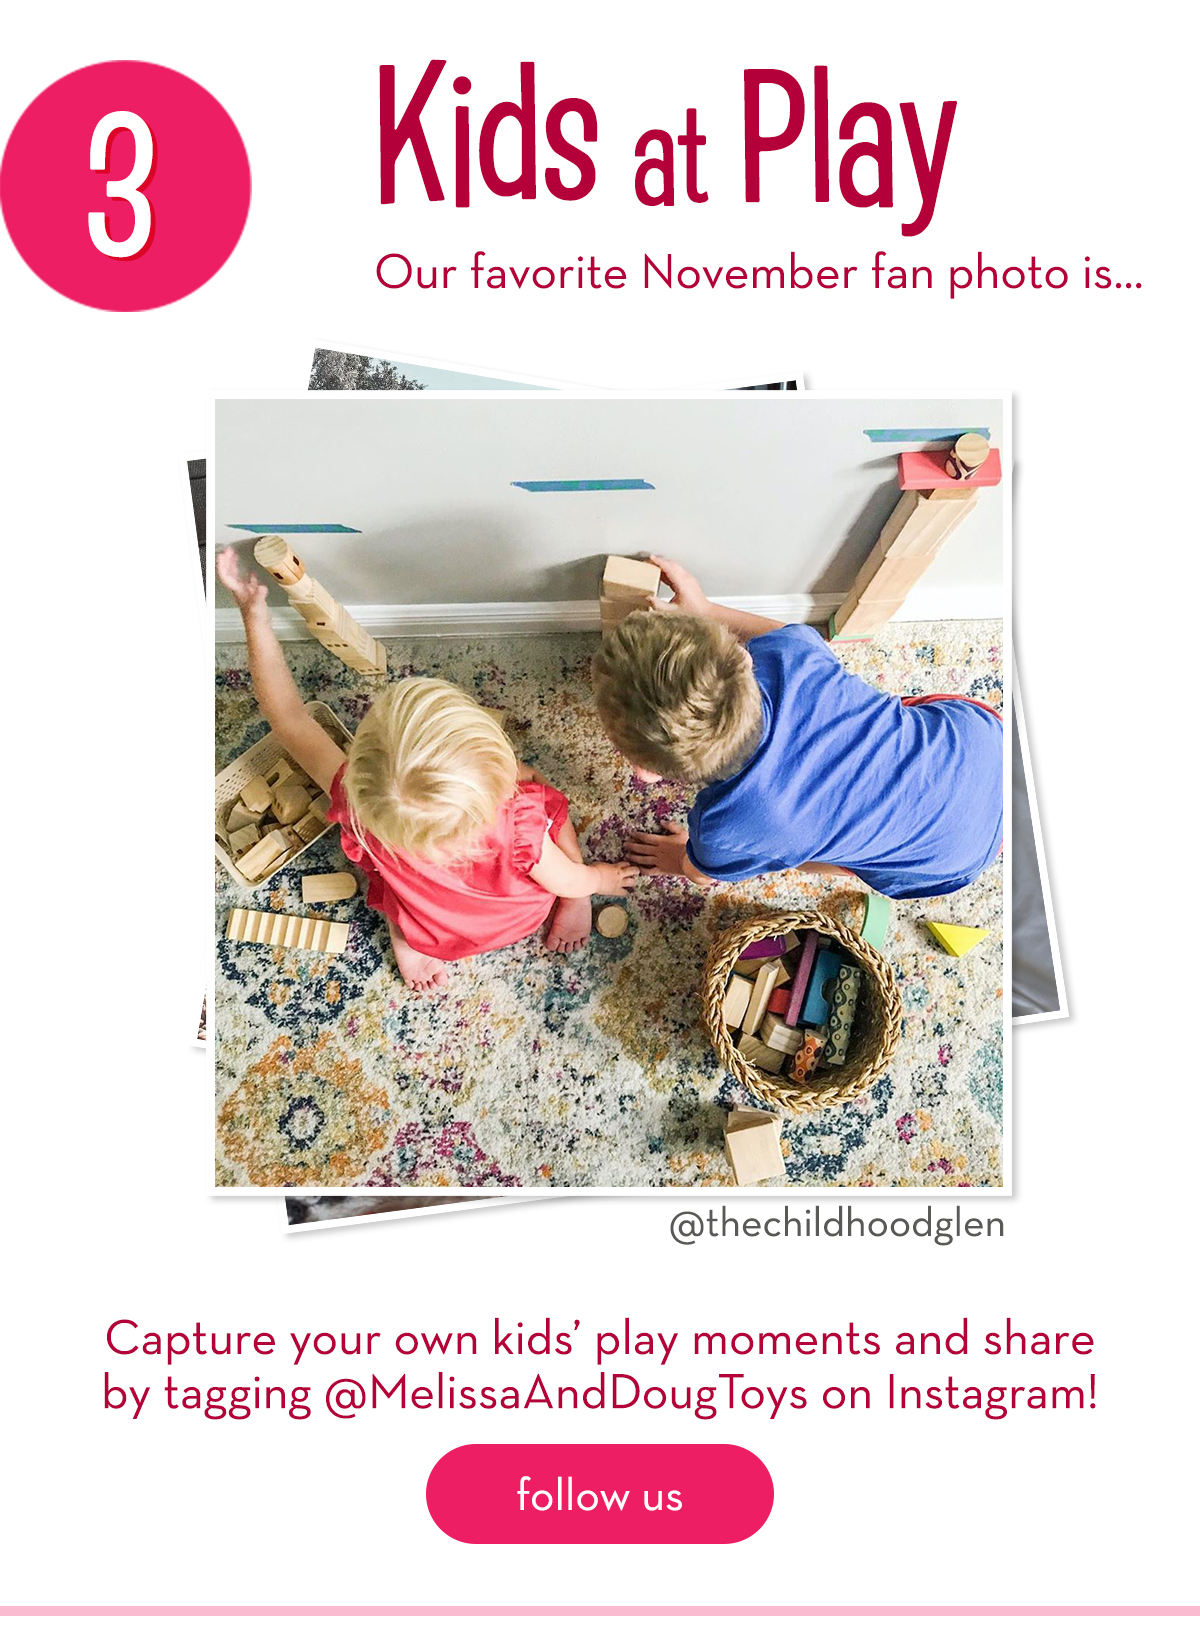 Kids at Play. Capture your own kids' play moments and share!